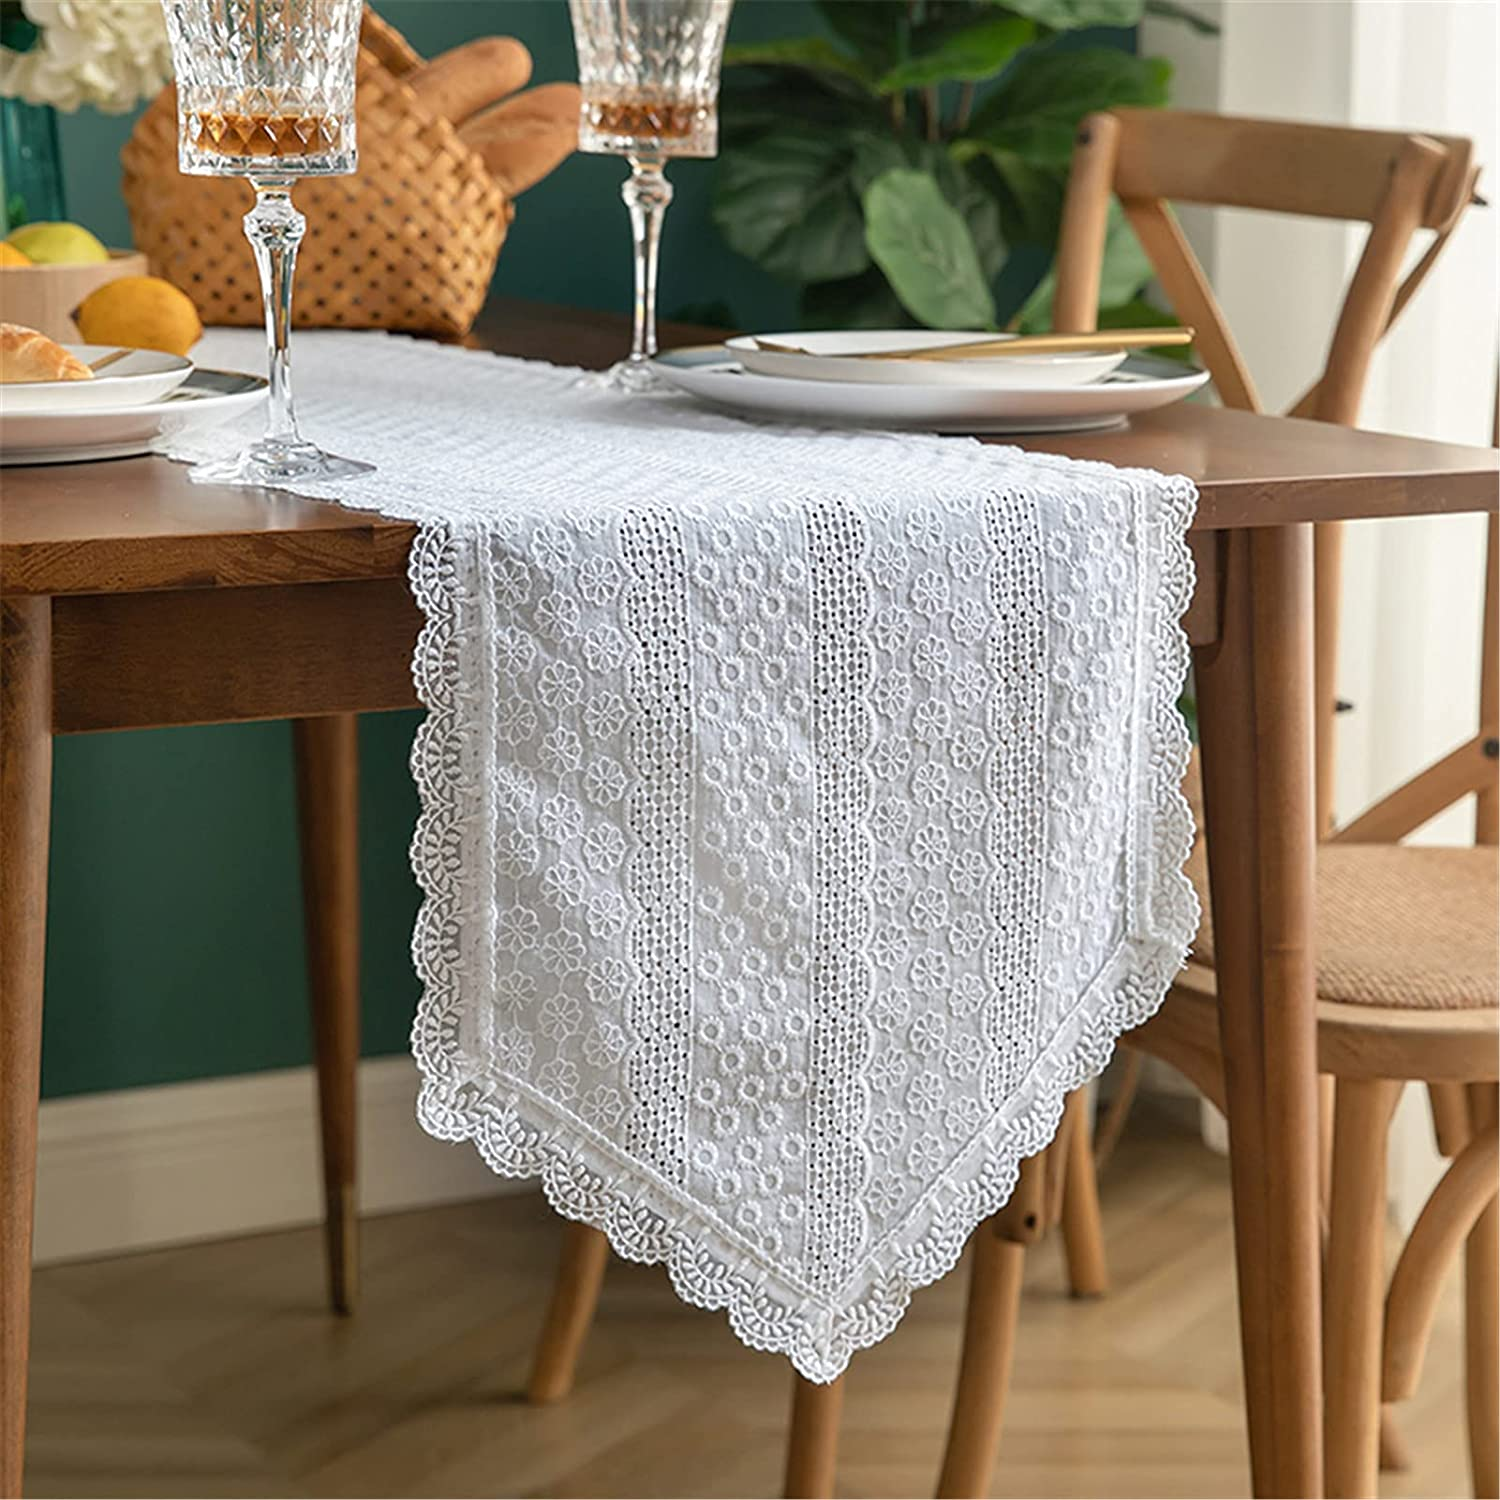 JLCP Beauty products Macrame Table Runner Boho White Wedding Fa Tablecloths Max 44% OFF Lace